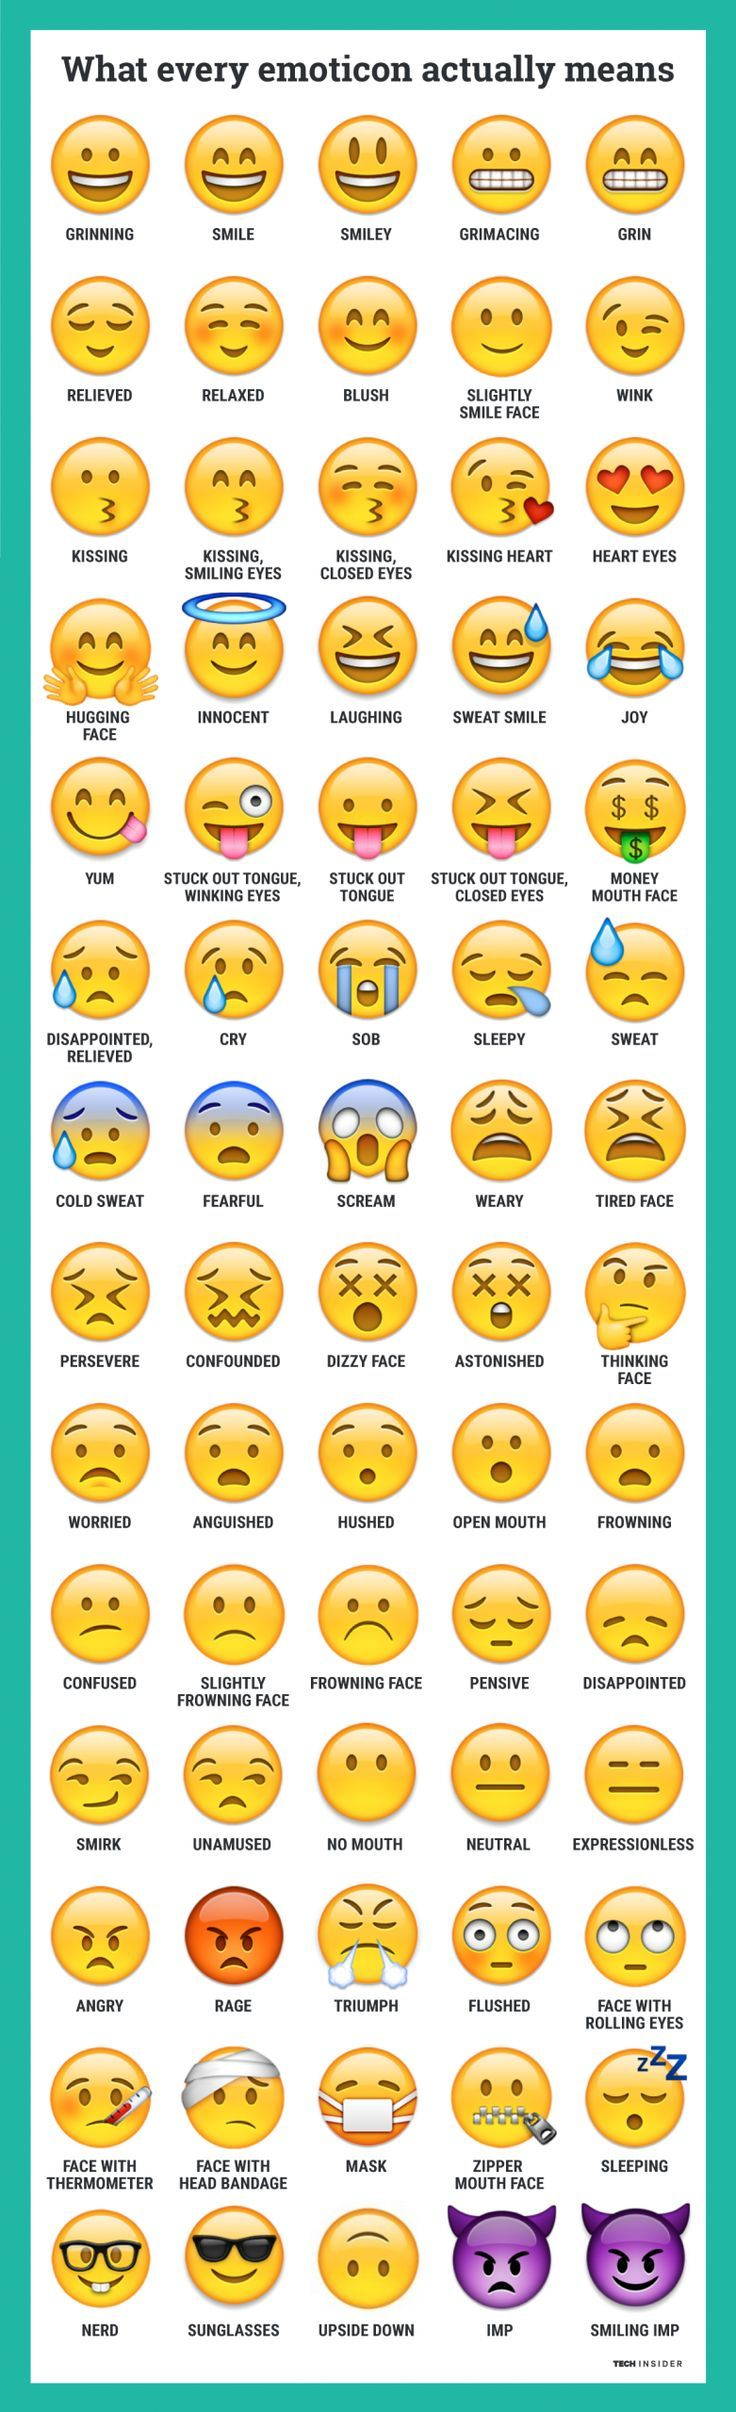 Emotions Explained! Get more great info from #ChampsCorner by following www.pinterest.com/WorldsBestBrand. Follow the #WorldsBestBrand on www.instagram.com/champsdiapers and www.facebook.com/ChampsDiapers.